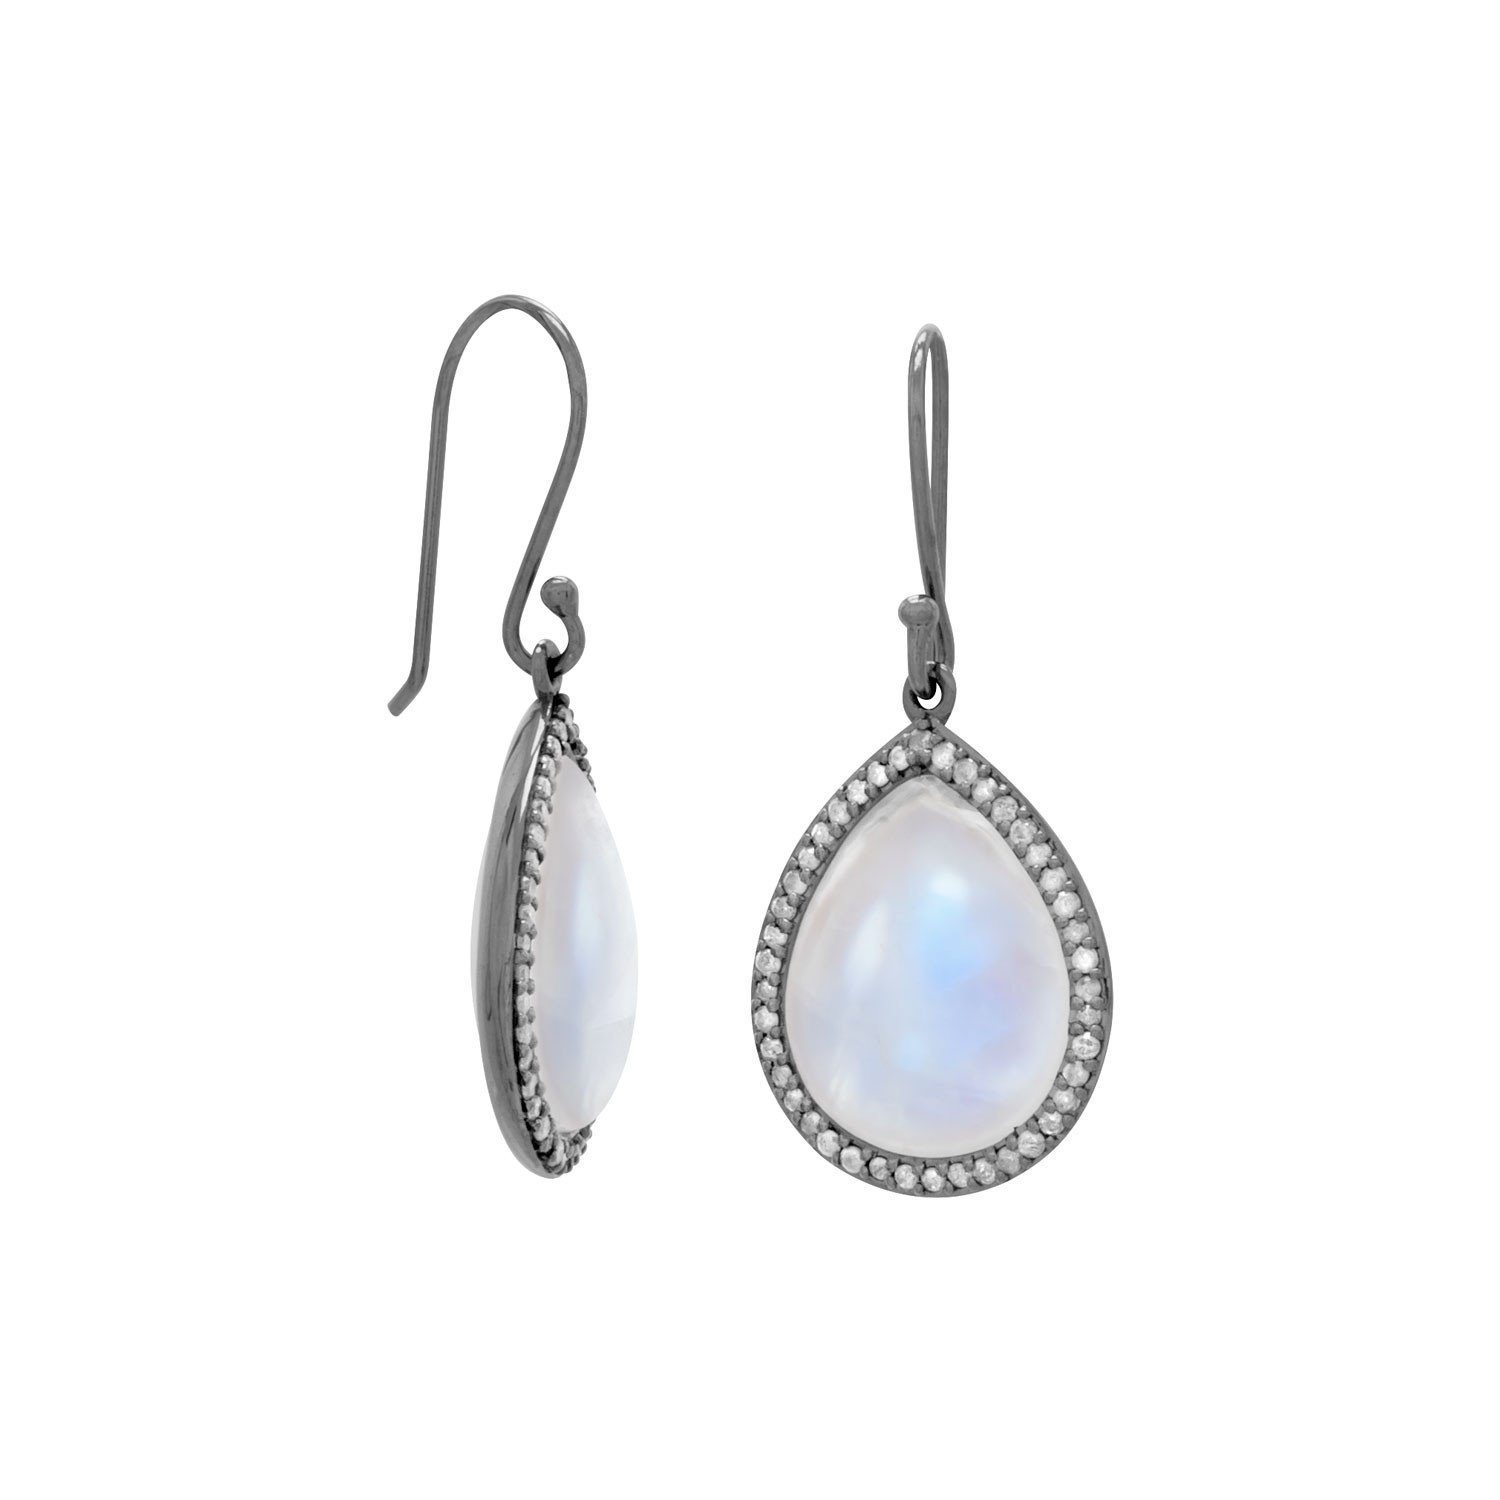 Midnight Collection Drop Earrings With Gray Diamonds